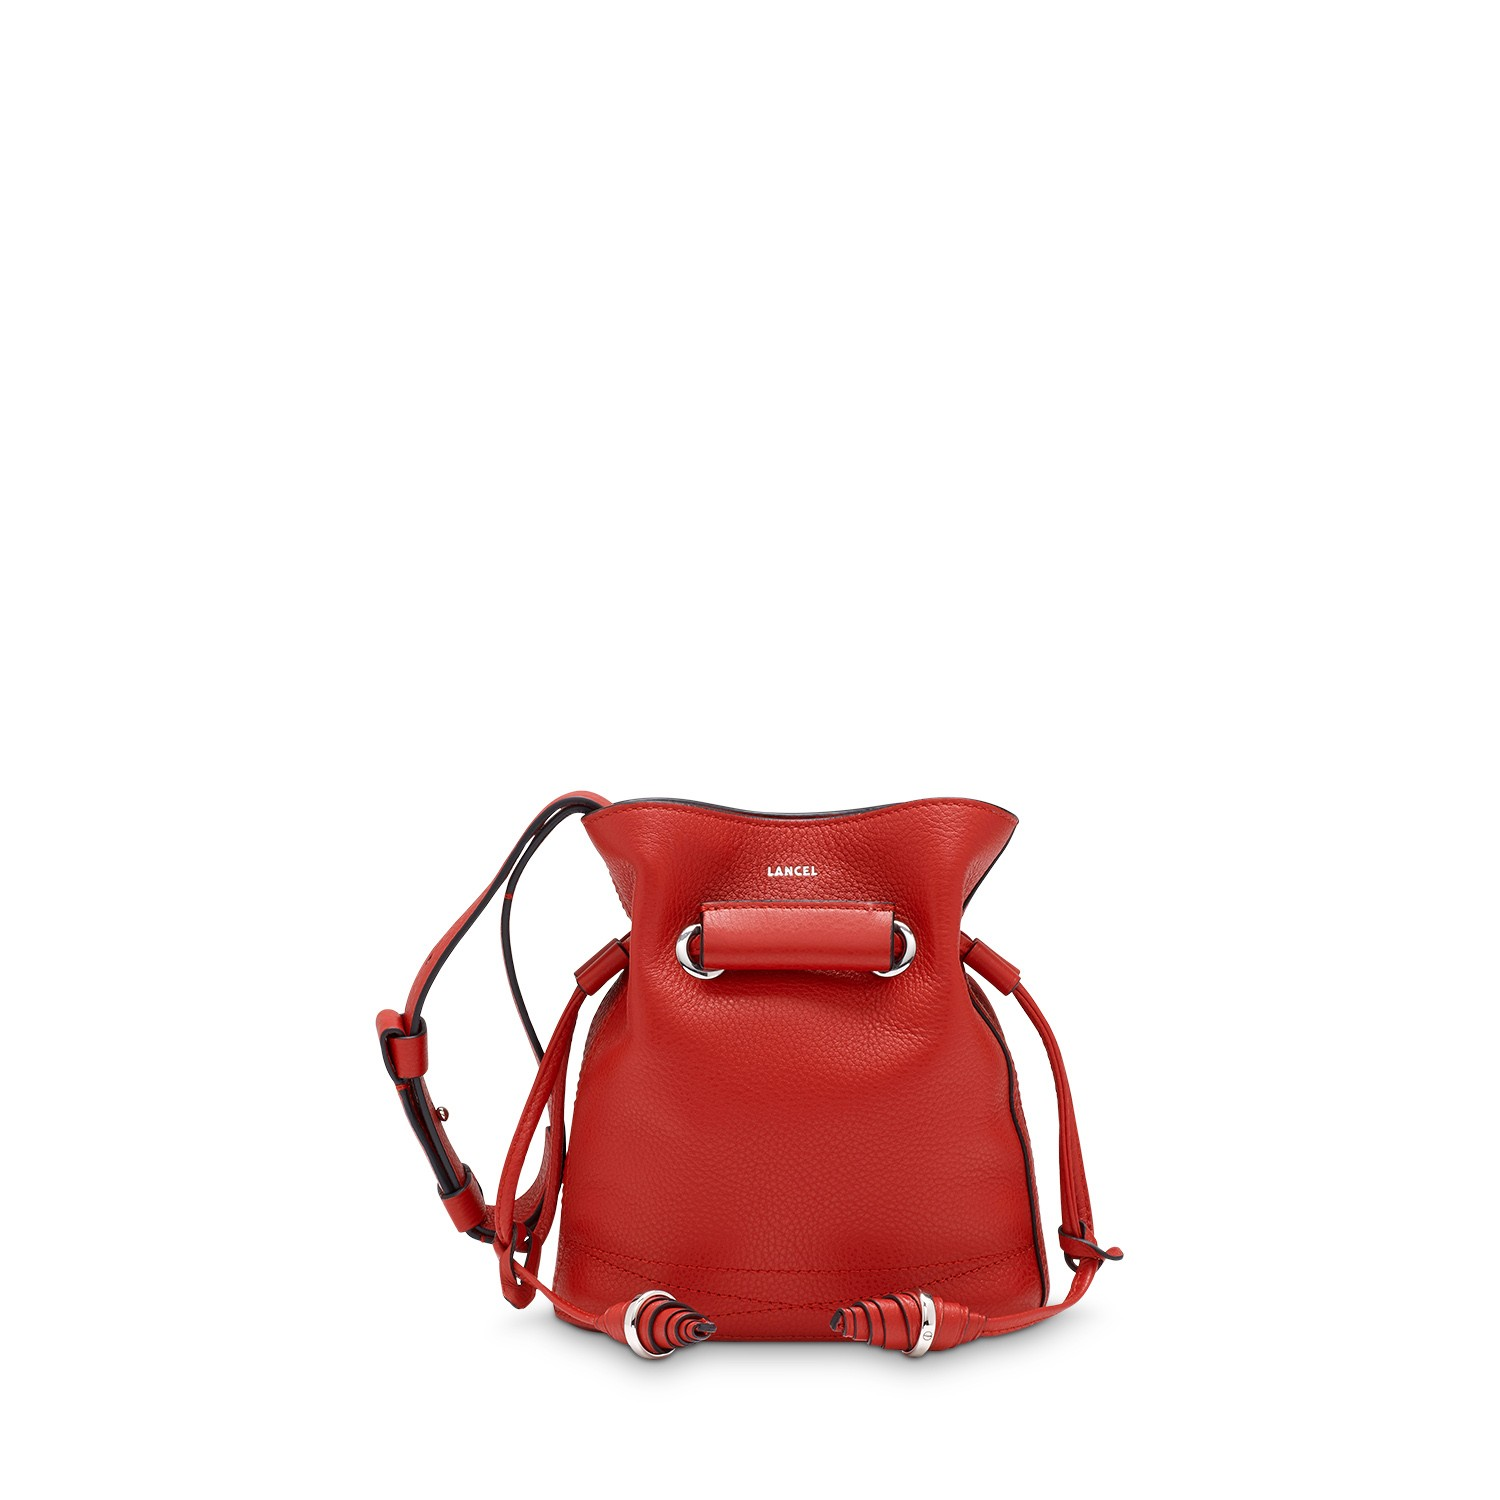 Le Huit de Lancel Bucket bag Rouge